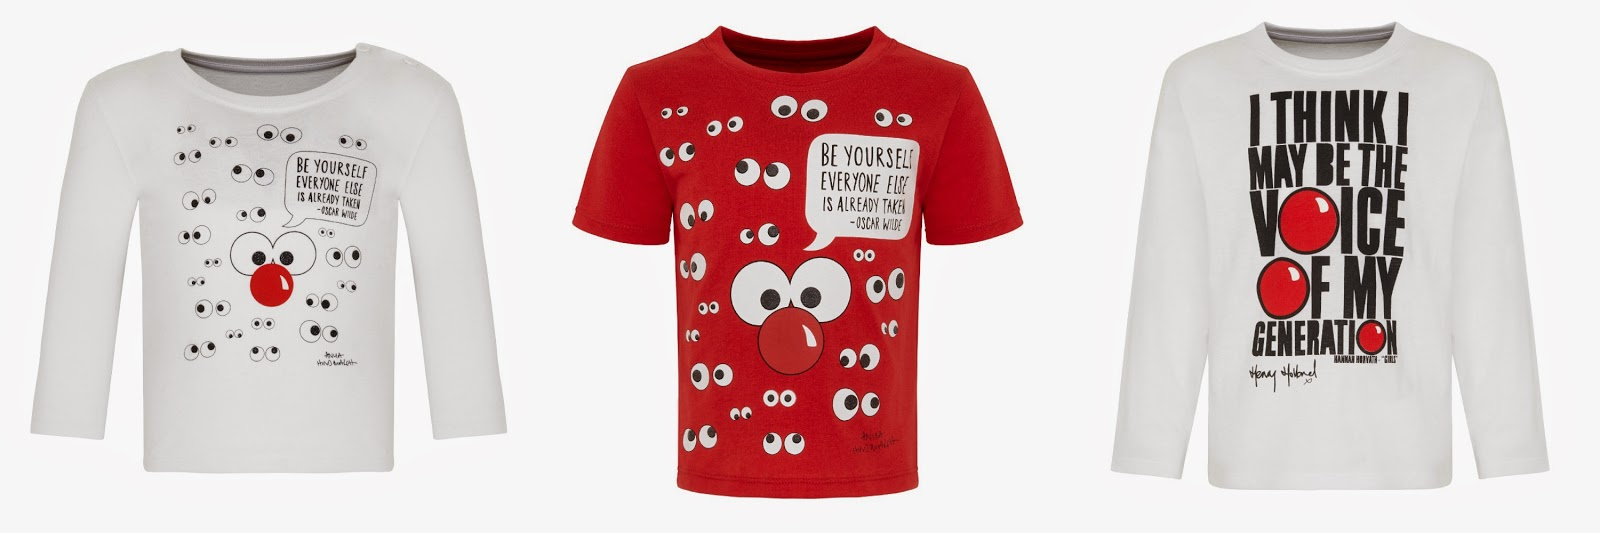 mamasVIB   V. I. BUYS: TK Maxx put the 'fashion' into Red Nose Day to support Comic Relief!   comic relief   red nose day   red nose   kate moss   Lily Allen   tkmaxx   designer tees   charity tees   diane von furstenburg   matthew williamson   henry holland   karl lagerfeild   anya hind march   charity   red nose t-shirts   red nose apron   tk maxx   comic relief merchandise   rimmel   red lipstick   donations   fridy the 13th   designer t-shirt for charity   fundraising   donations   charity   TKMaxx t-shirts   red nose   mamasVIb